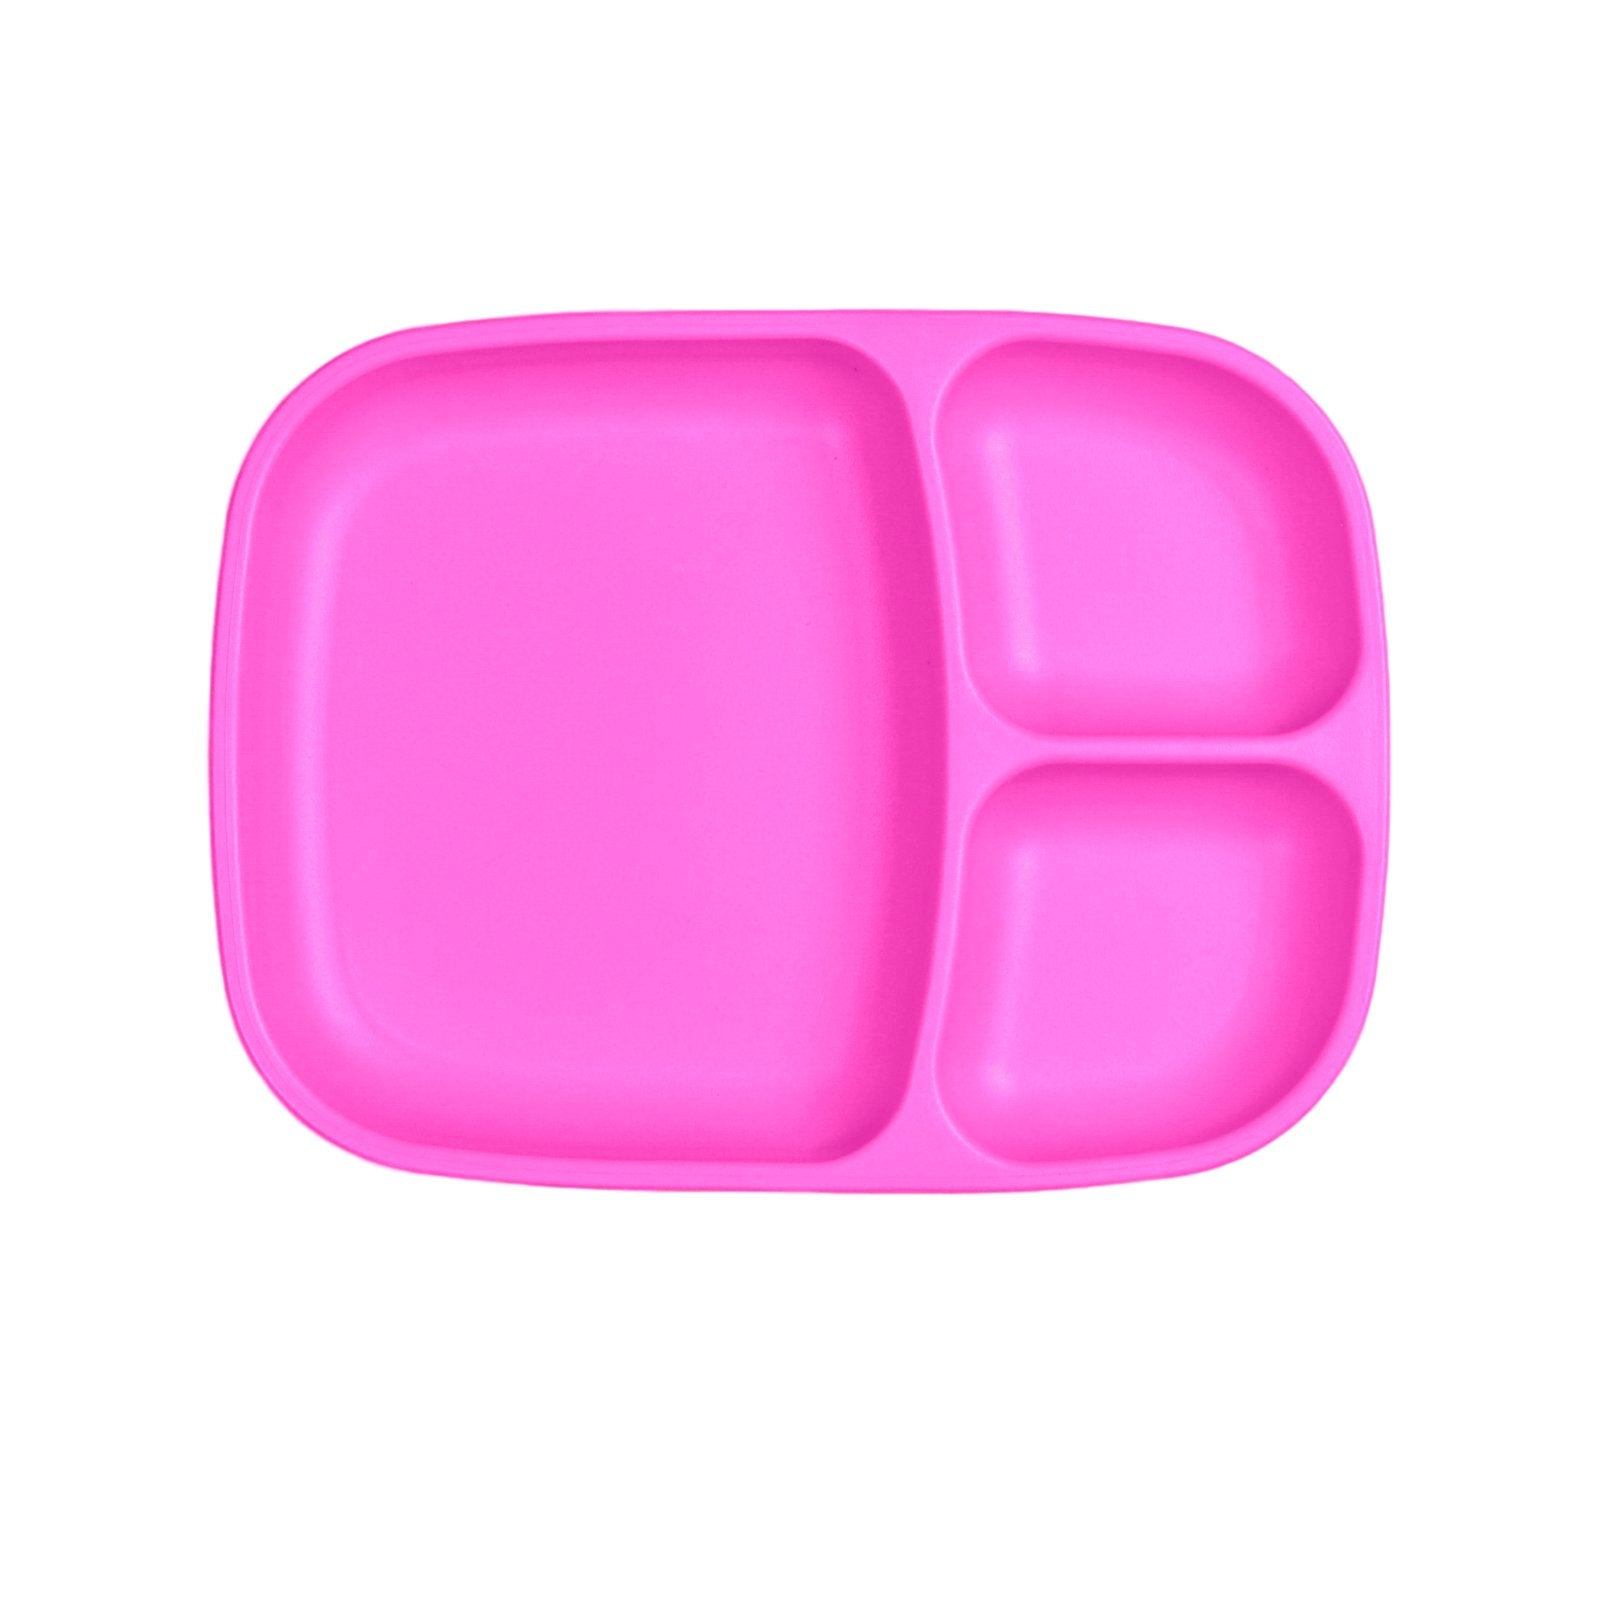 Replay Large Divided Plate Replay Dinnerware Bright Pink at Little Earth Nest Eco Shop